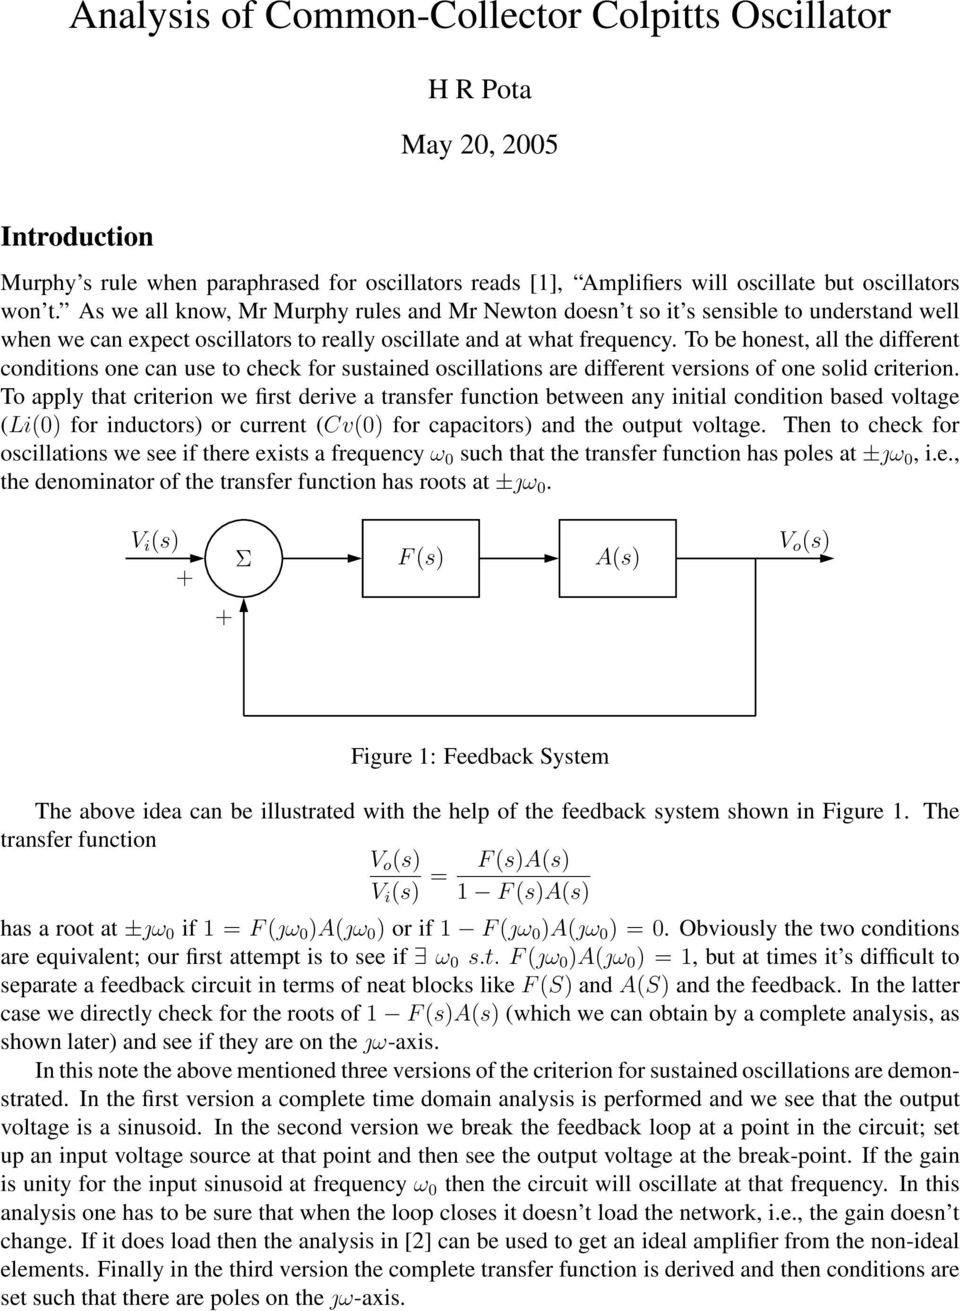 Analysis Of Common Collector Colpitts Oscillator Pdf The Utilizes A Tank Circuit Lc In Feedback To Be Honest All Different Conditions One Can Use Check For Sustained Oscillations